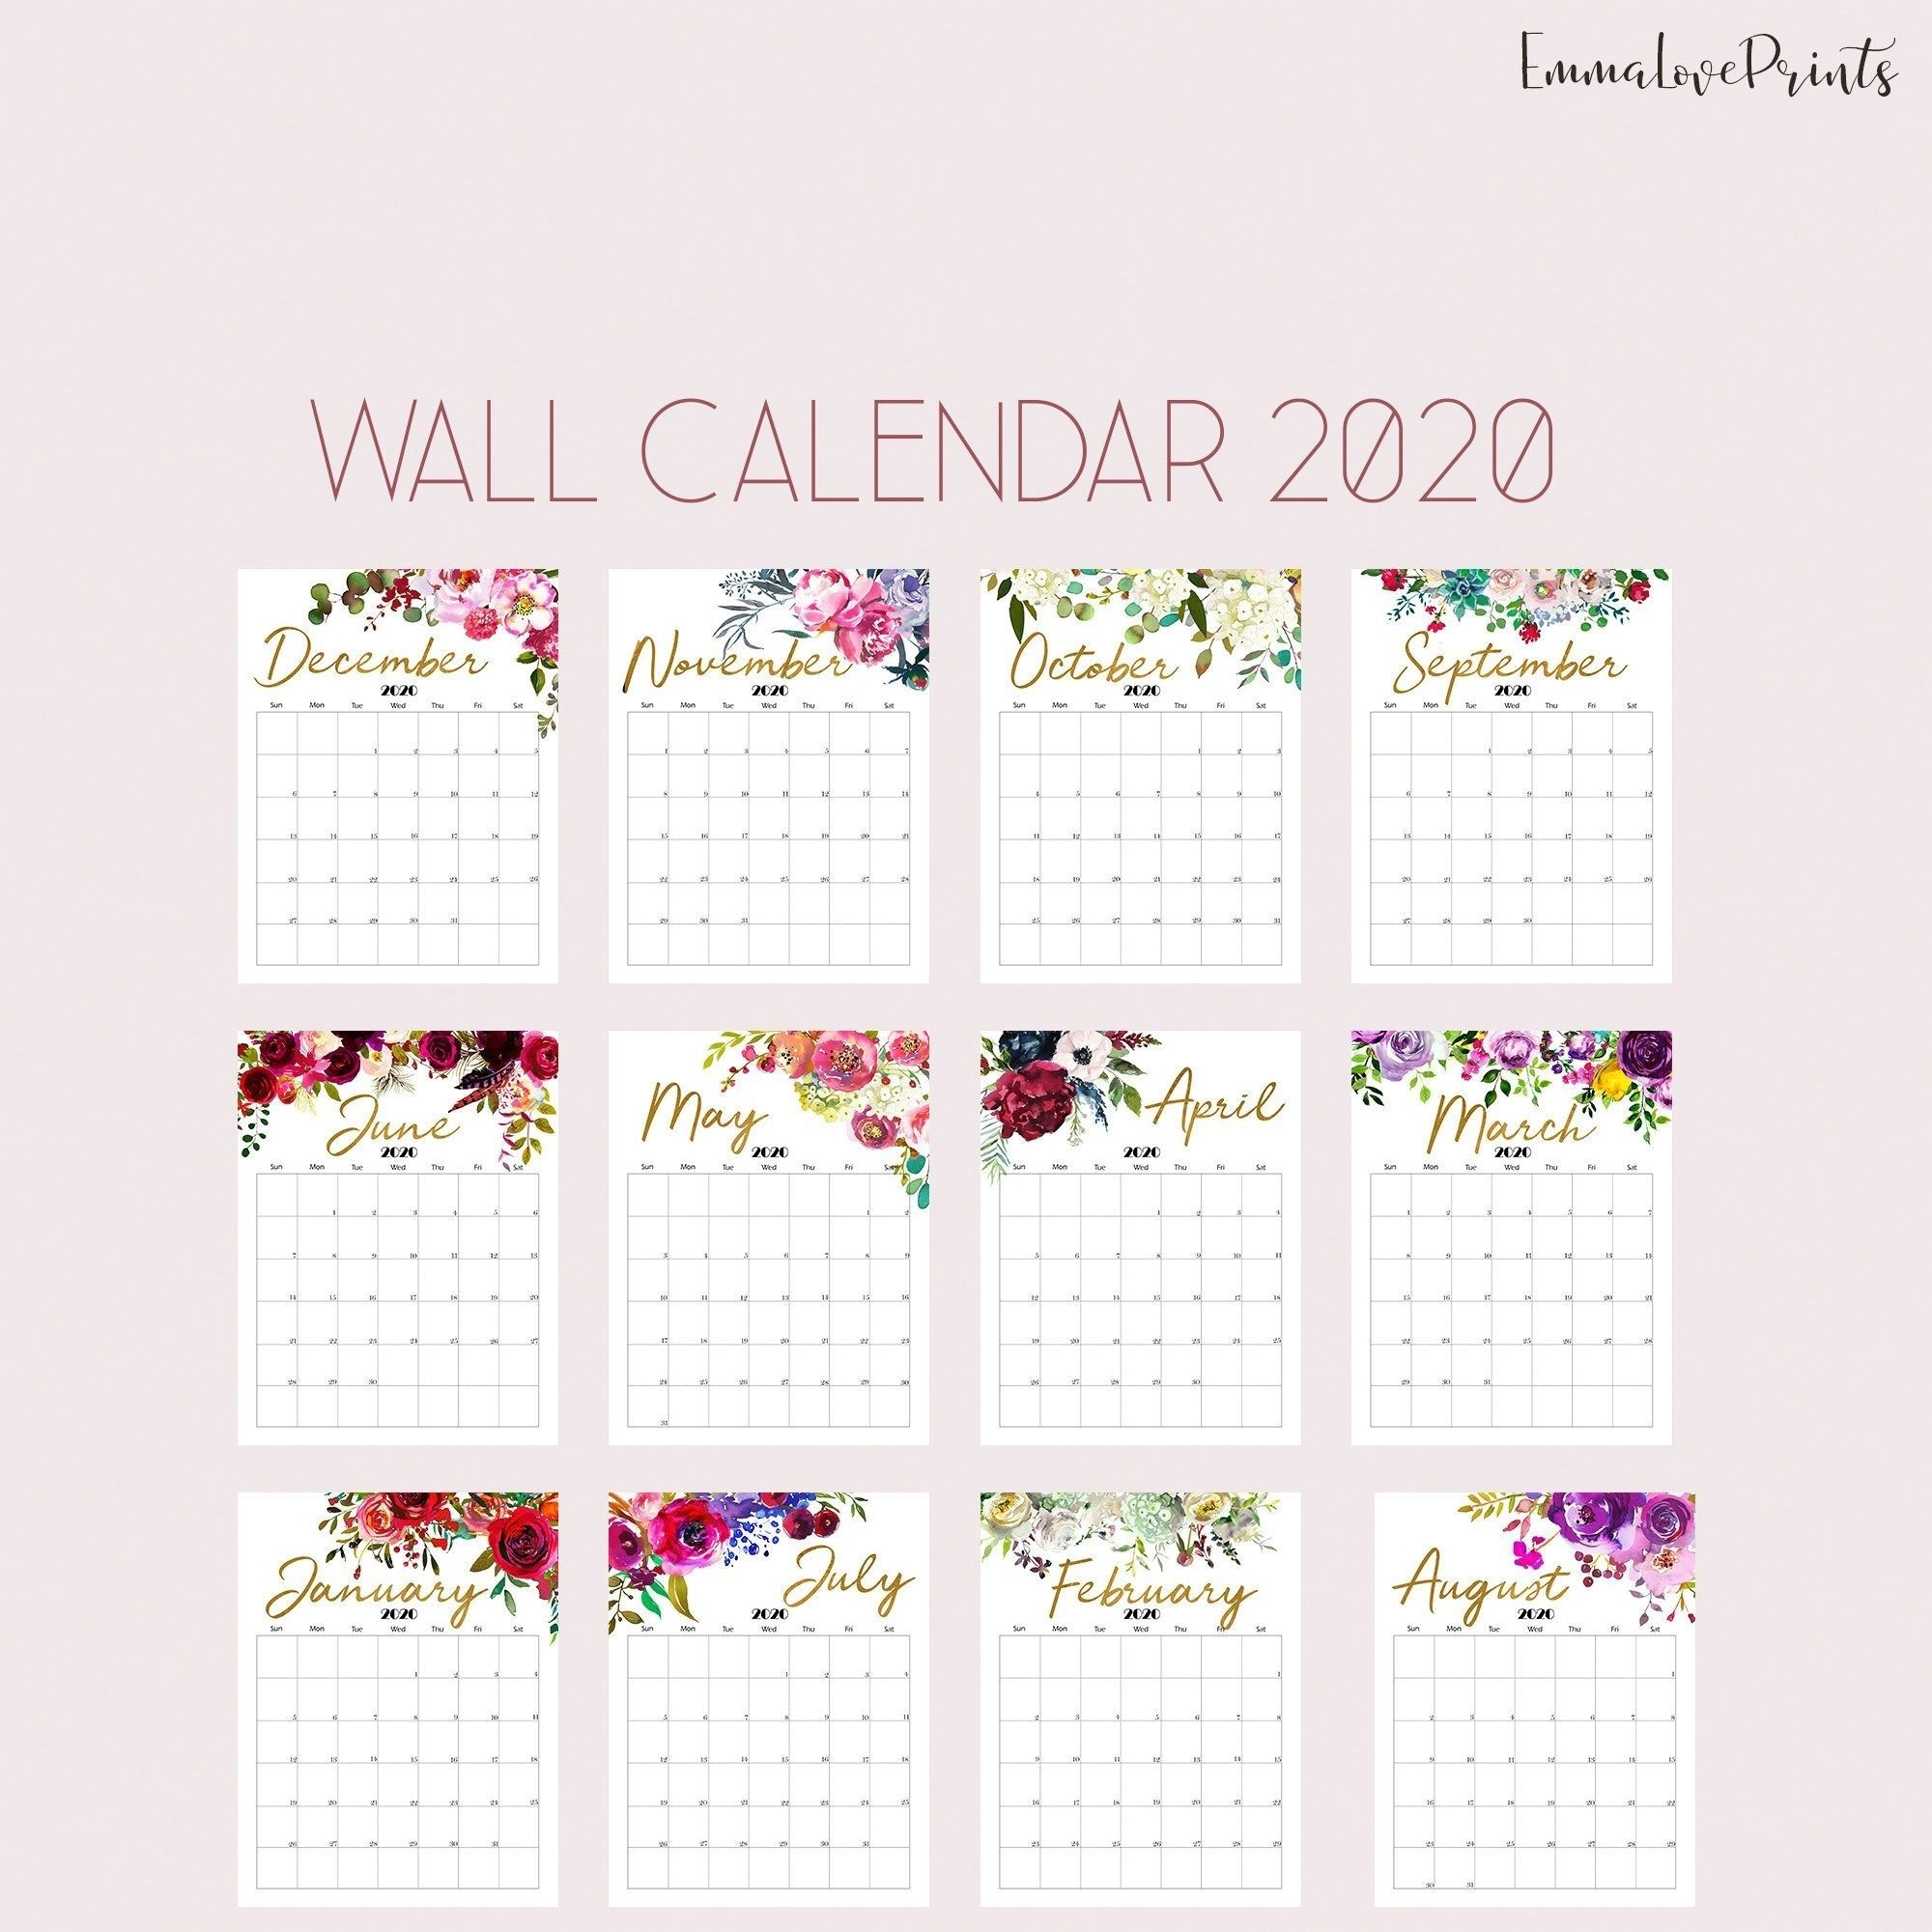 printable calendar 8 5x11 | month yearly calendar for 2020